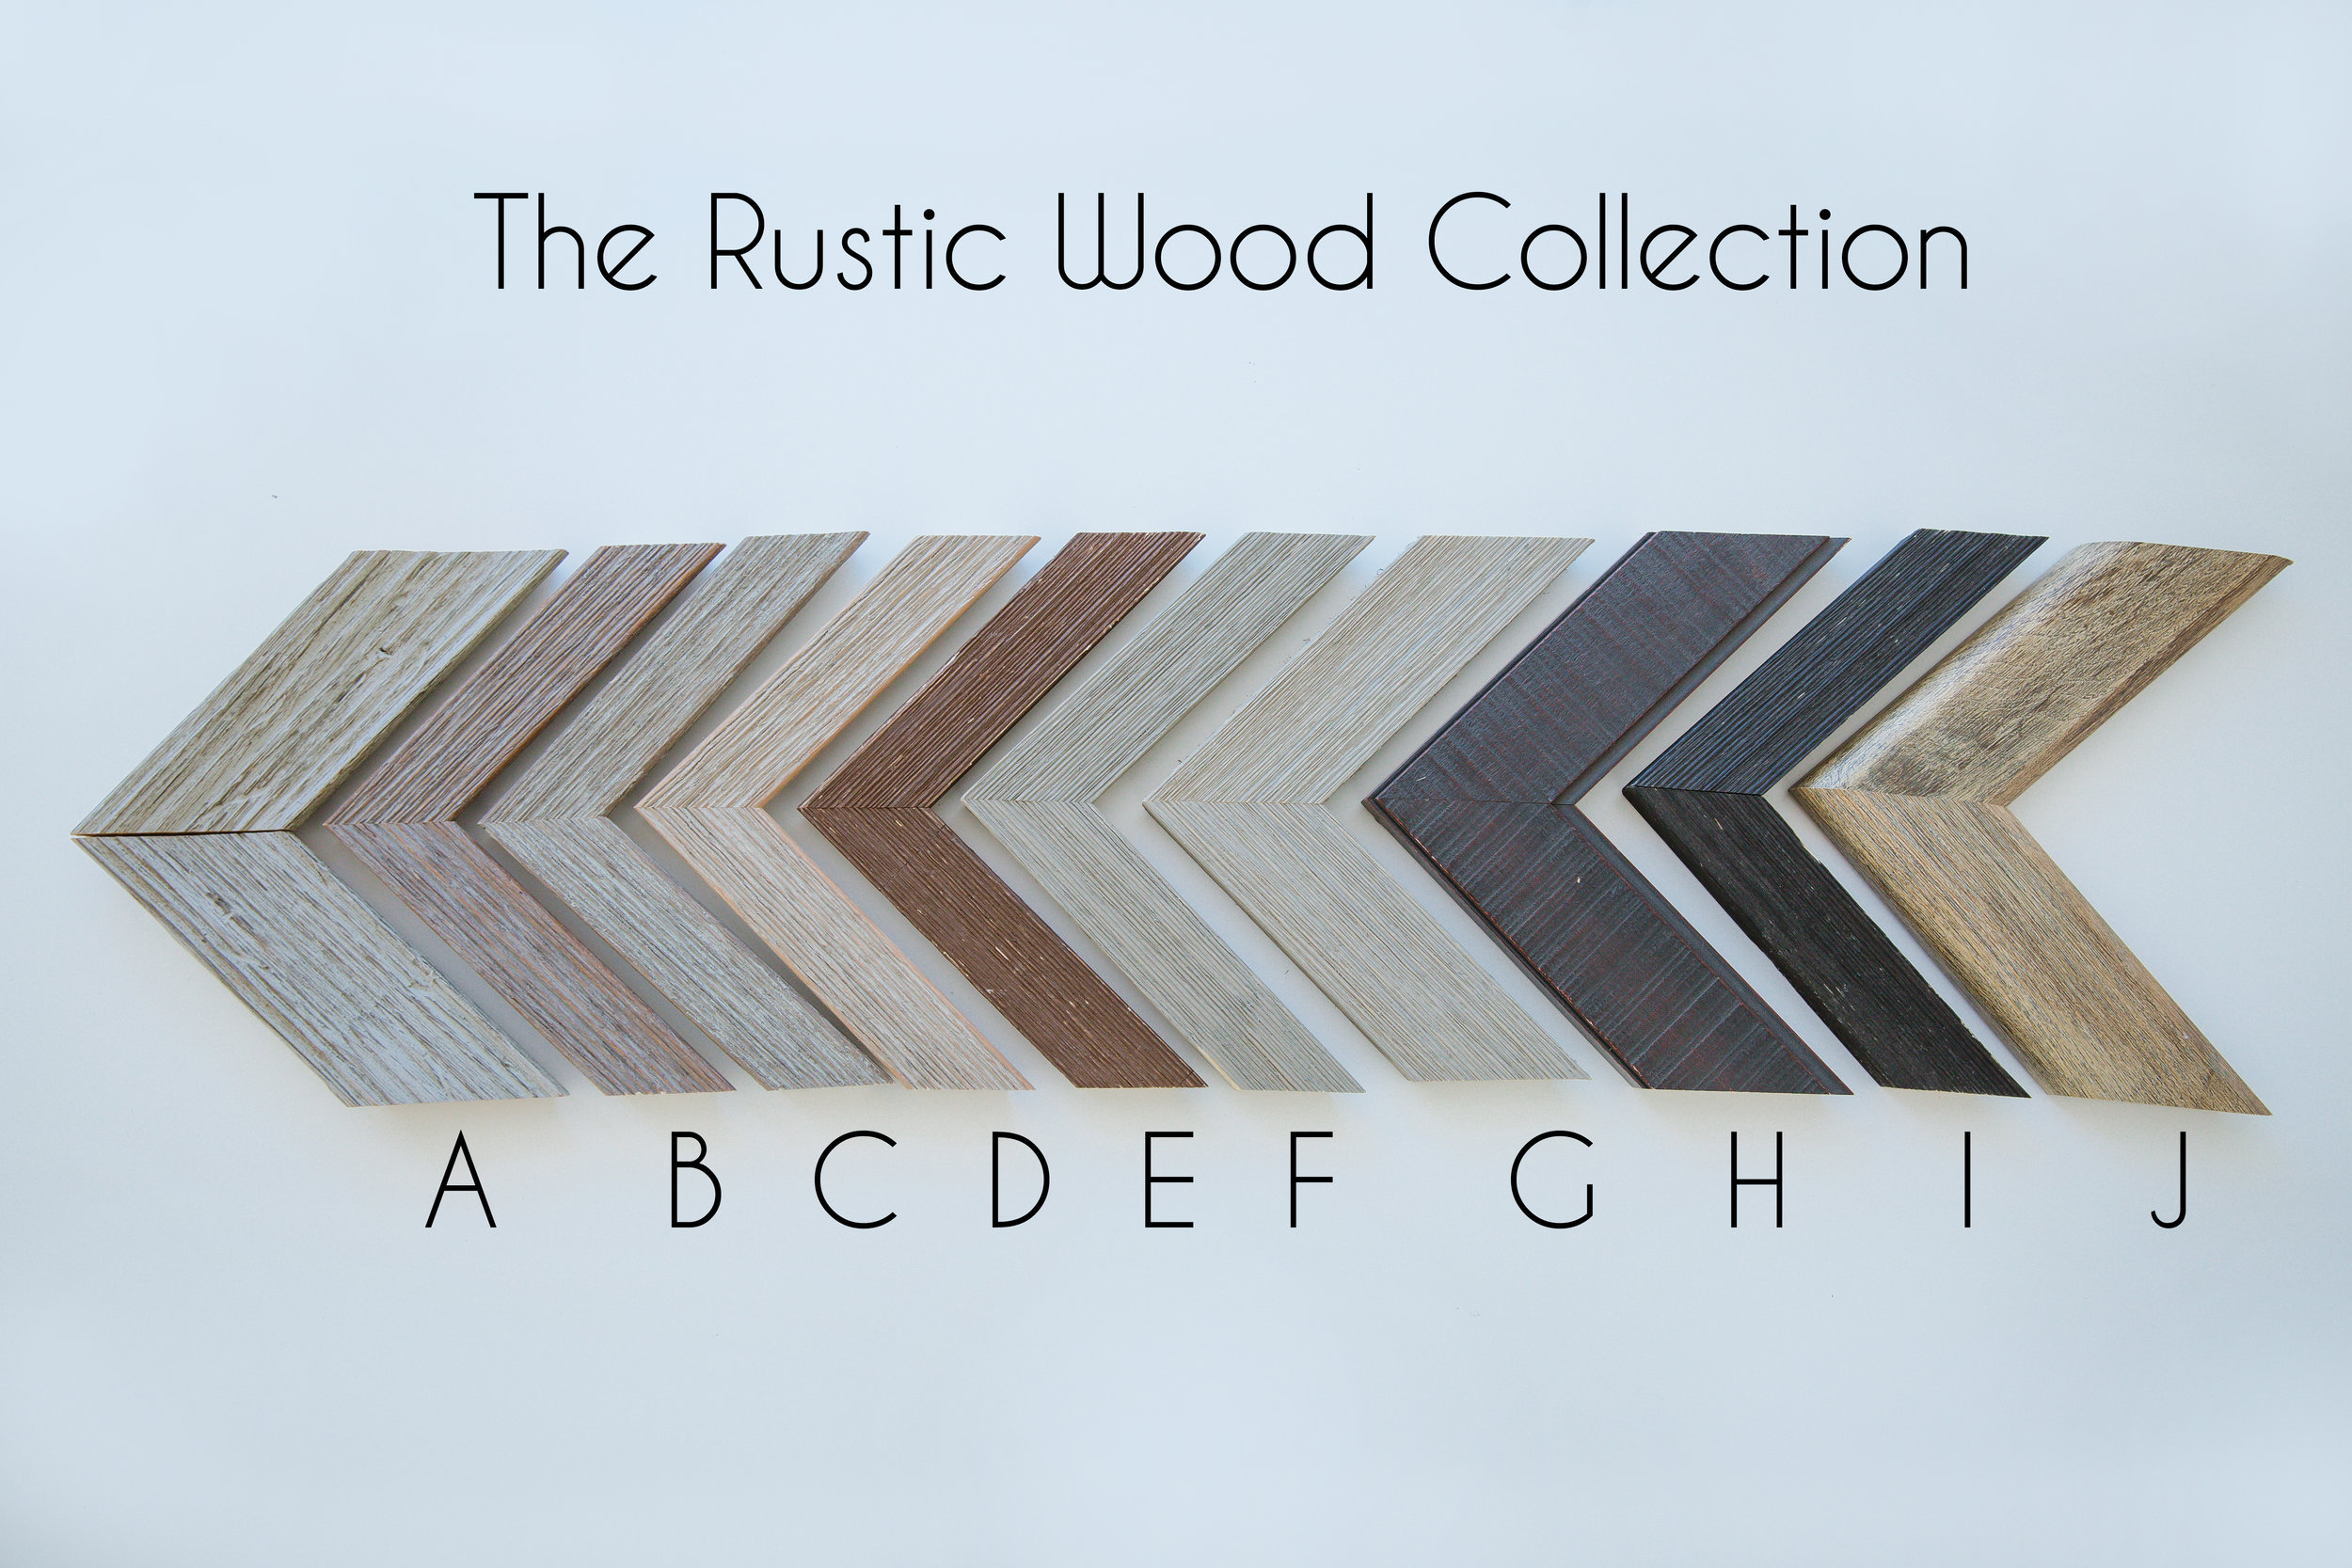 The rustic wood collection is very similar to Joanna Gaines and her shabby chic style.